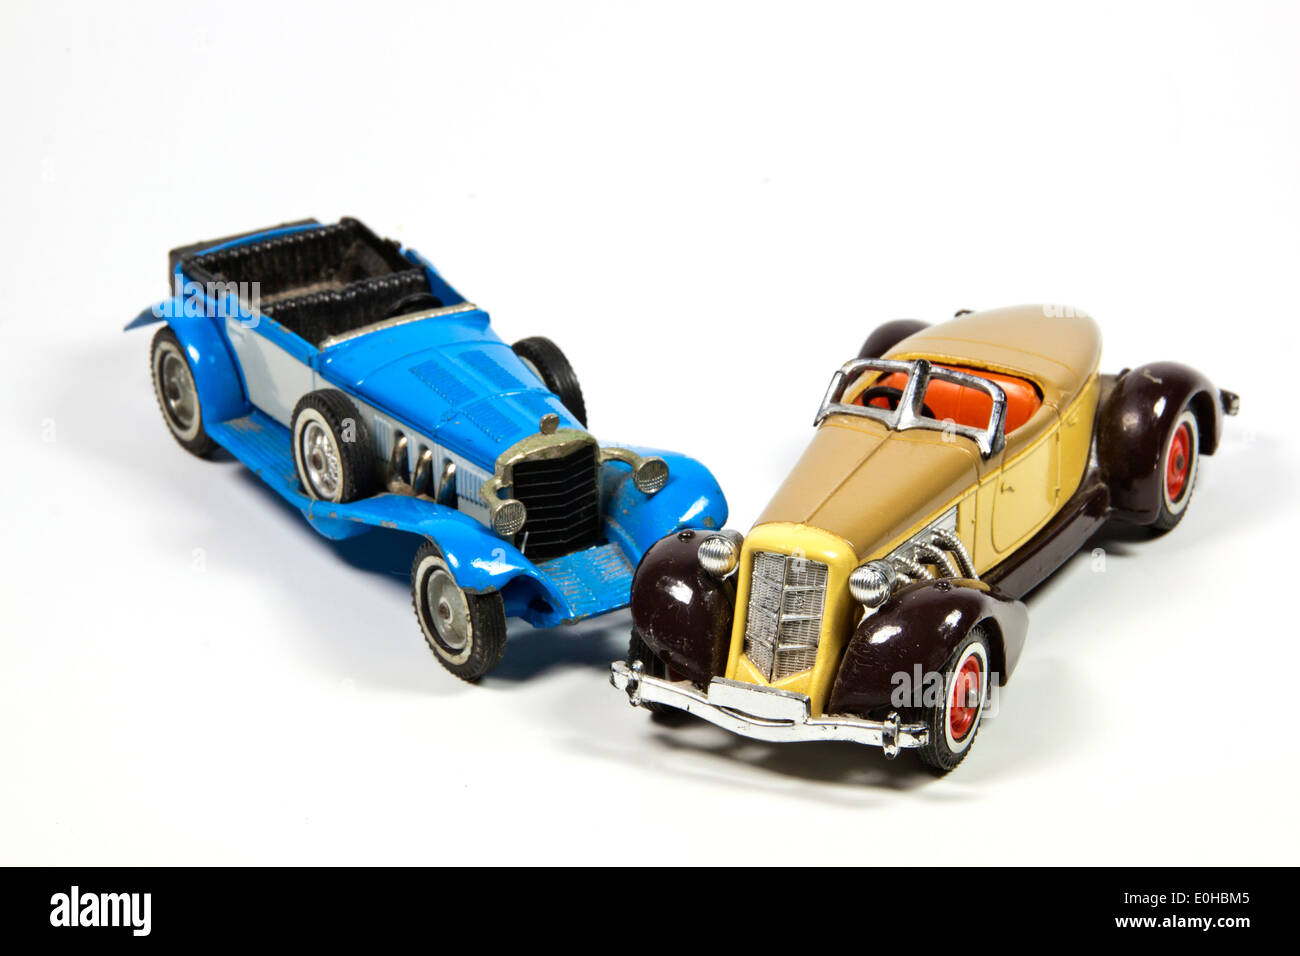 two vintage toy model cars on white - Stock Image